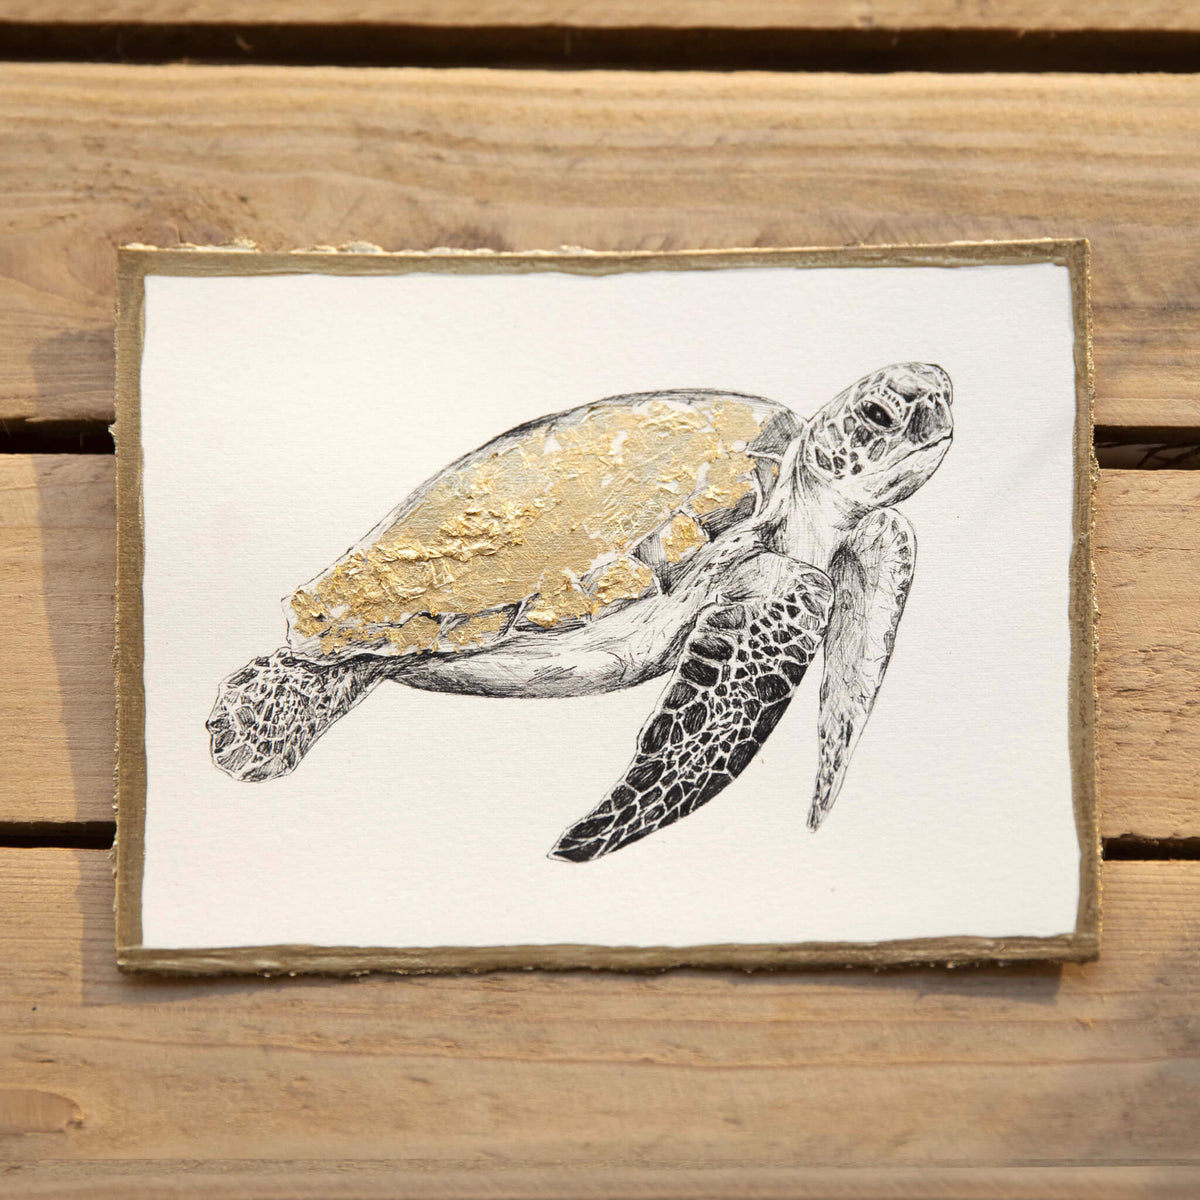 turtle-artwork-by-jackson-and-young